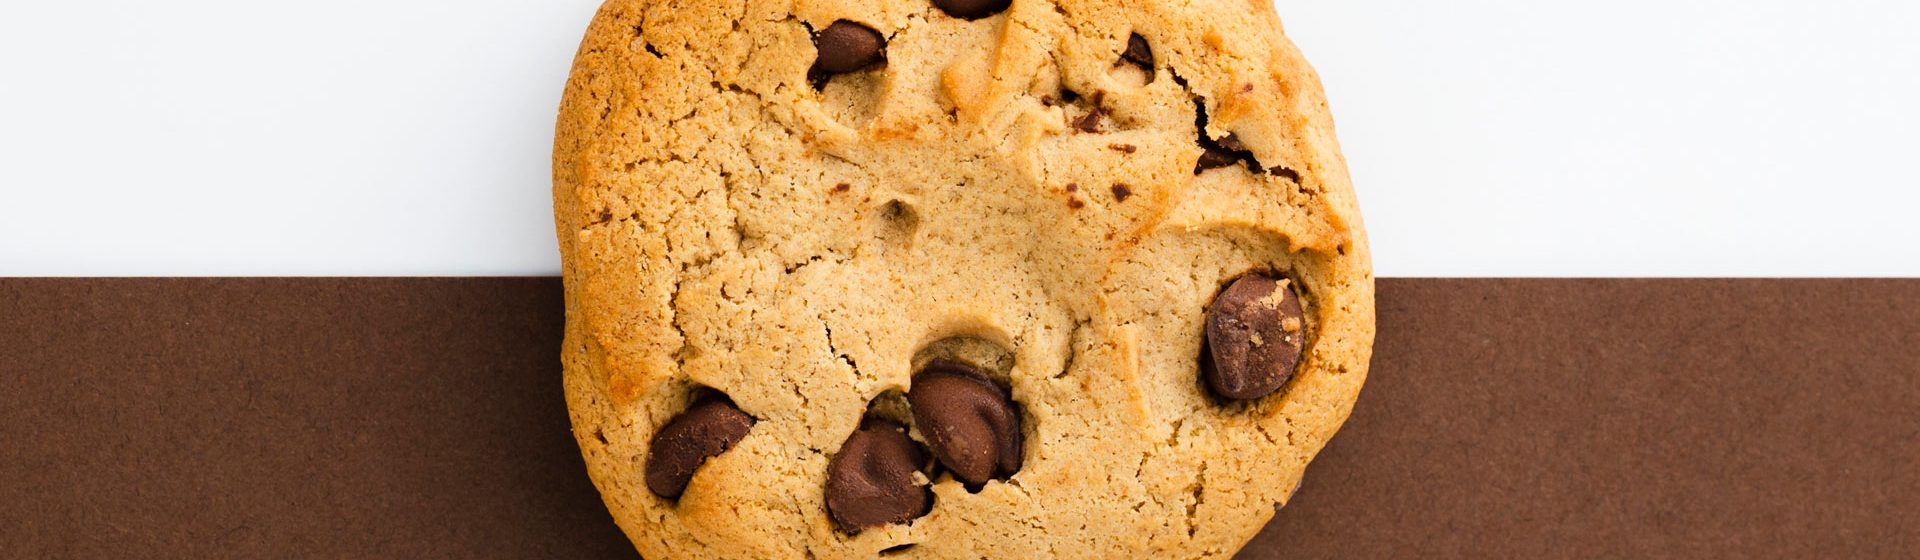 Difference Between First Party and Third Party Cookies